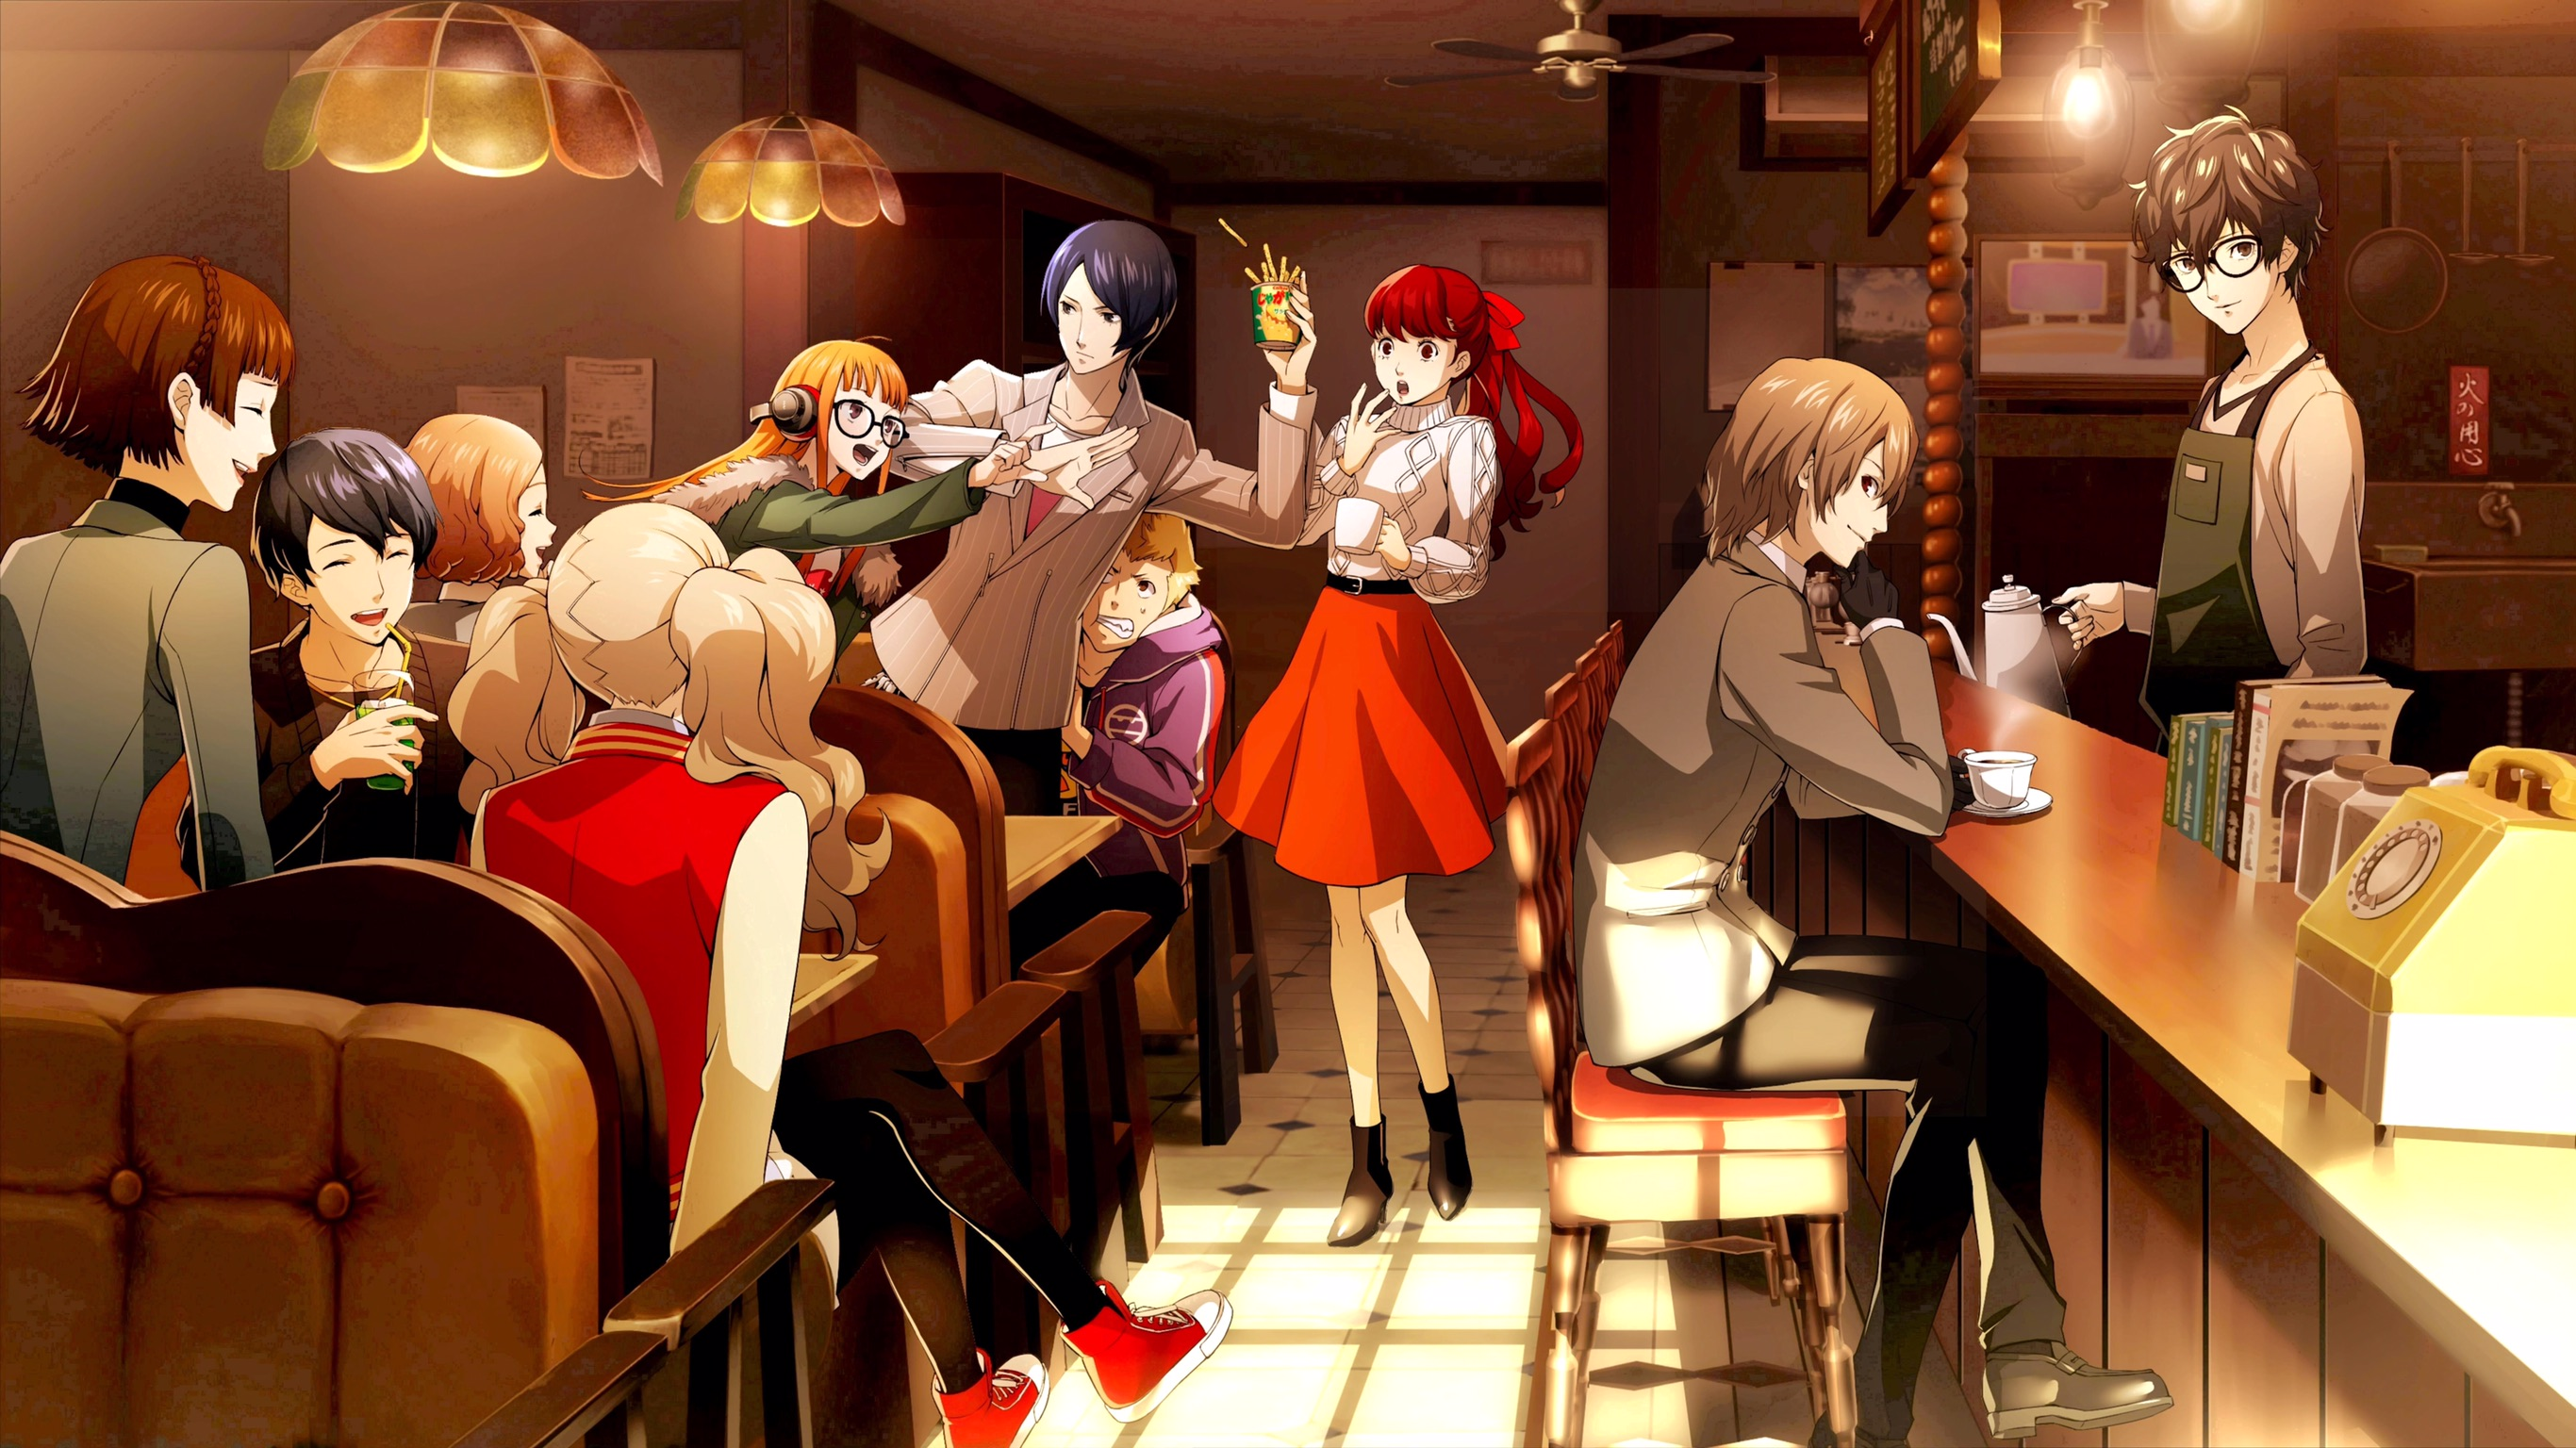 Persona 5 Royal Hd Wallpaper Background Image 2732x1536 Id 1079065 Wallpaper Abyss